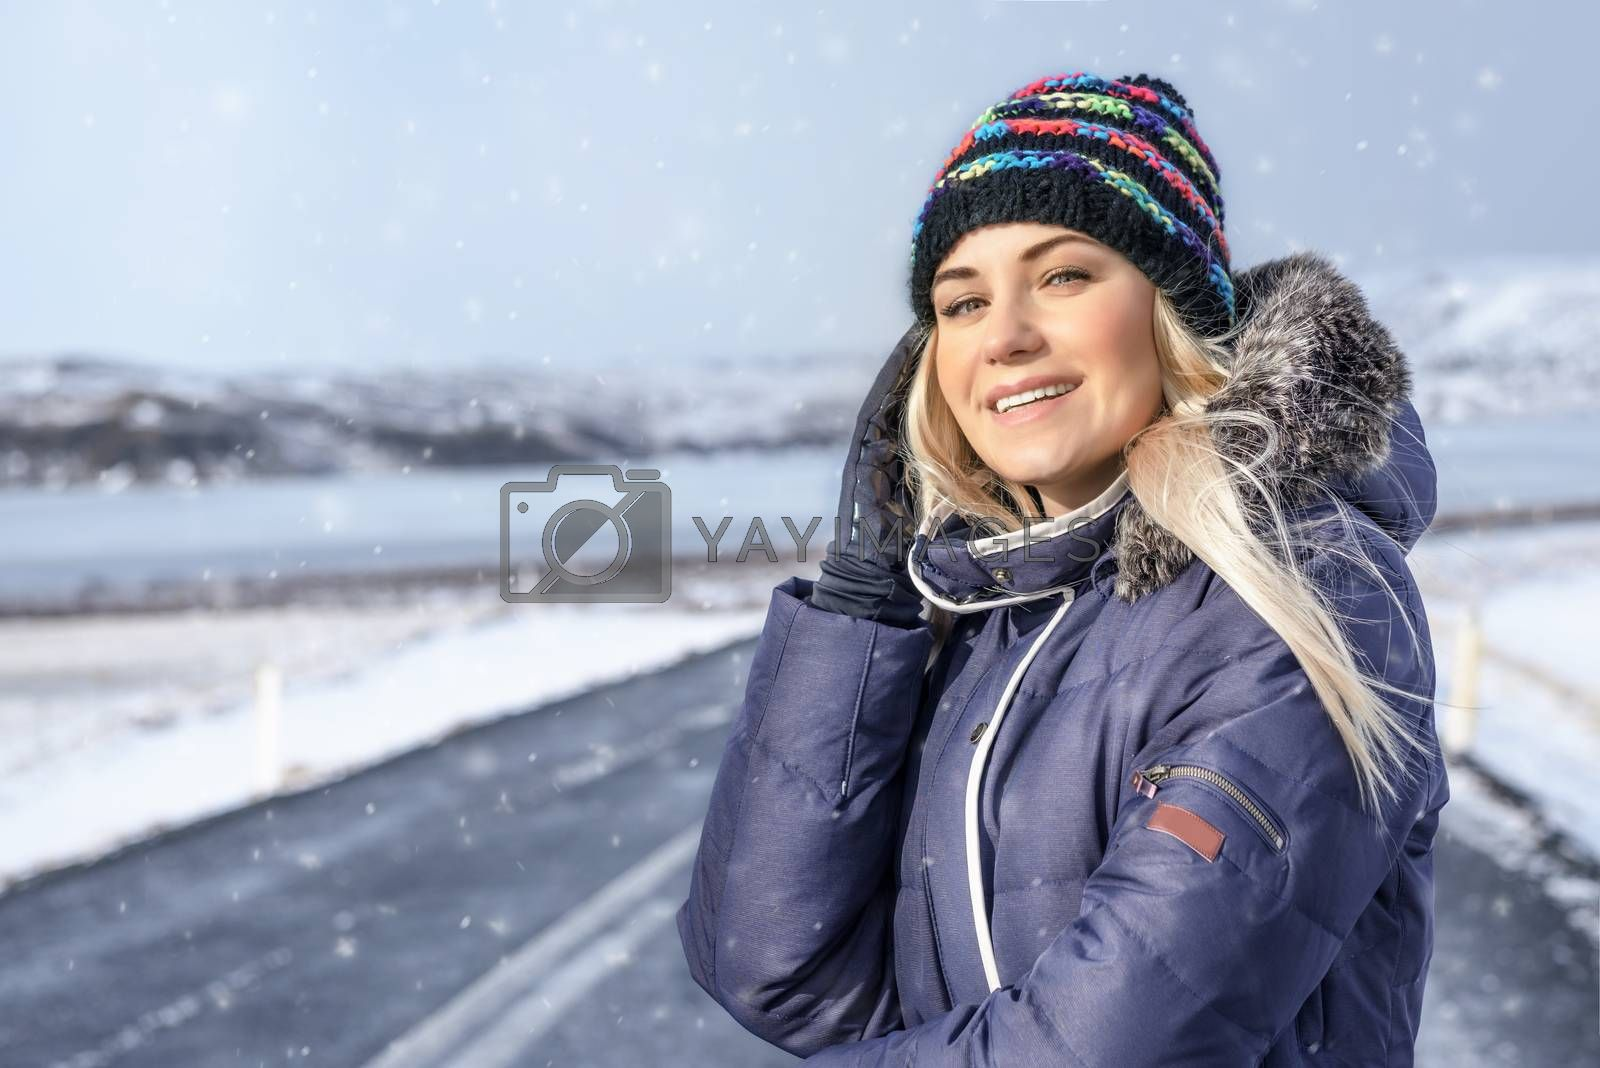 Young people traveling in winter, portrait of a beautiful smiling girl enjoying road trip, standing on the road in snowy wintertime day, tourist in Iceland